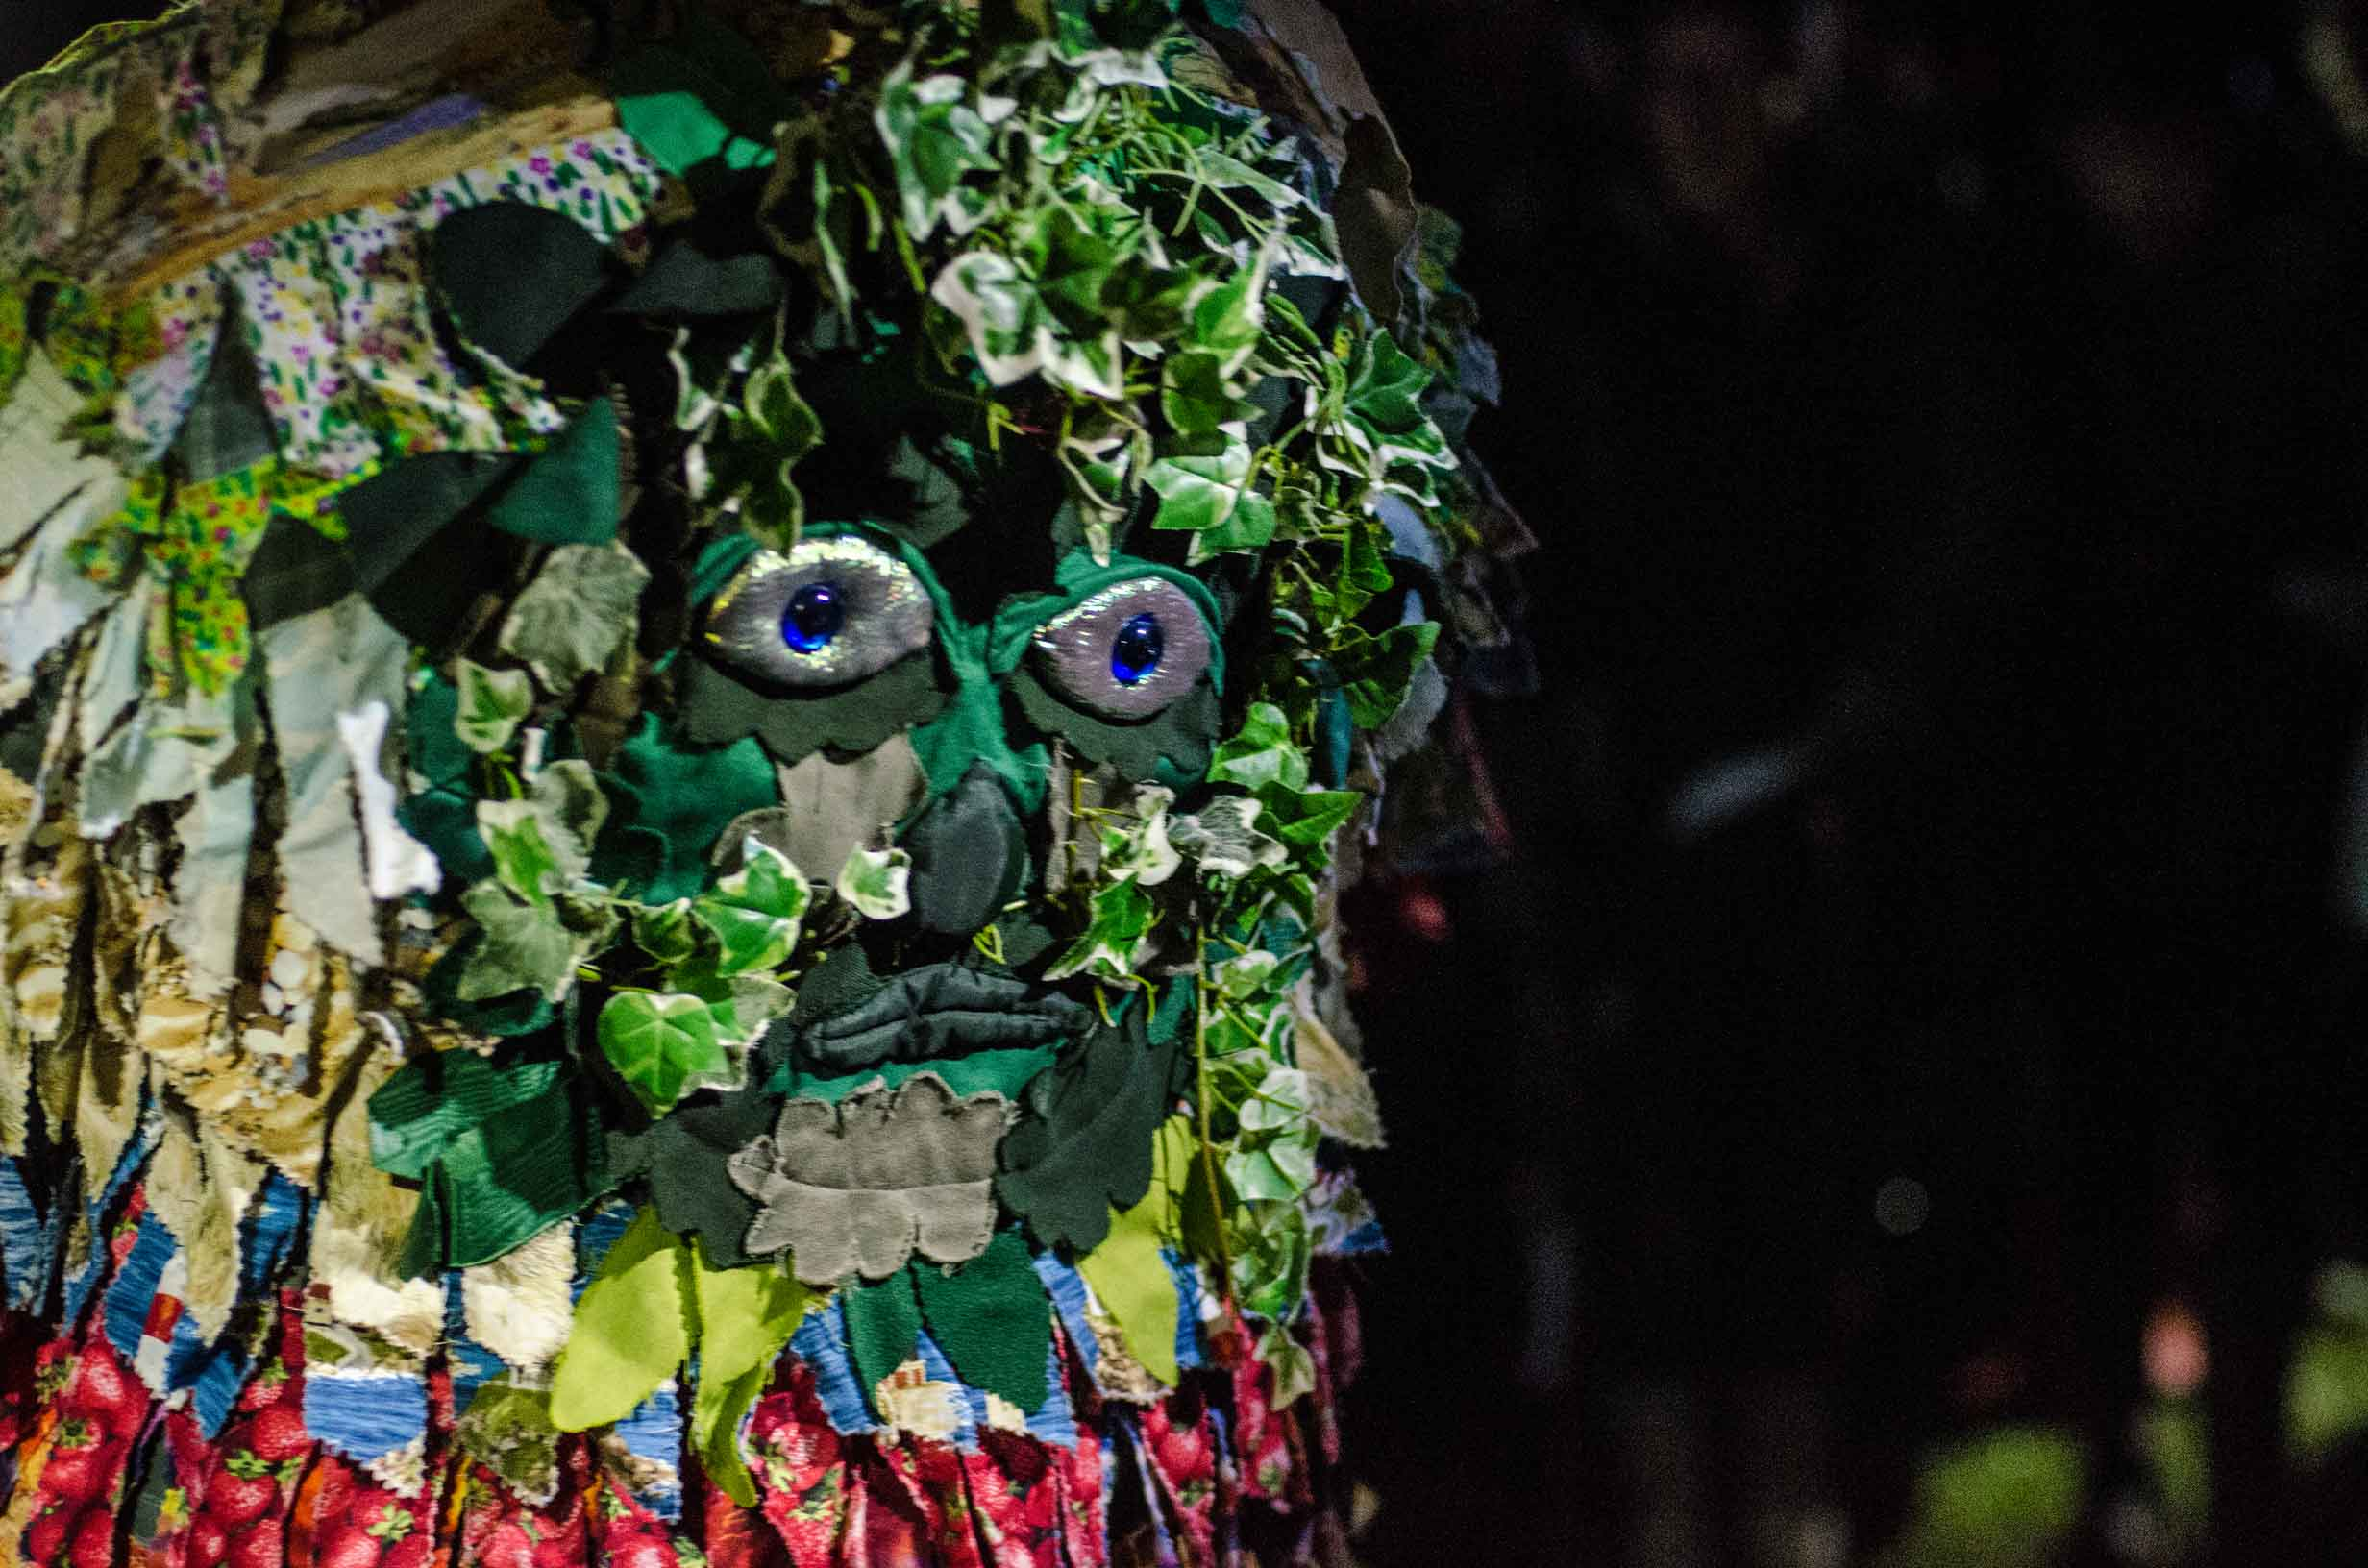 Enter the Green Man, the leader of the Wassailing ritual.